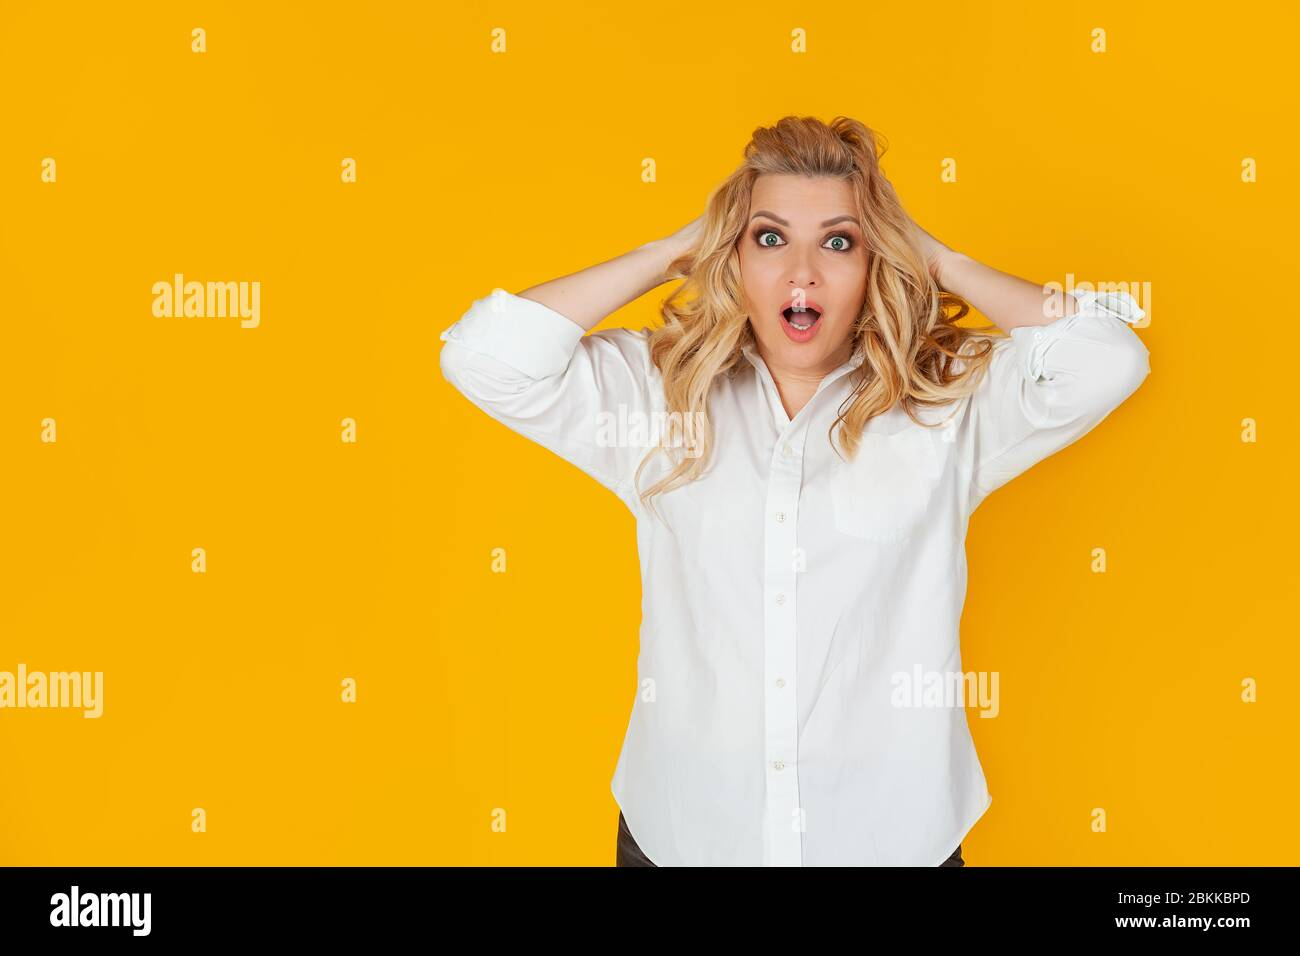 Portrait of a woman in a panic with her hands clutching her head, excited and looking panicky down, hands clutching her head, breaking an expensive thing, alarmed indecisive, on a yellow background Stock Photo